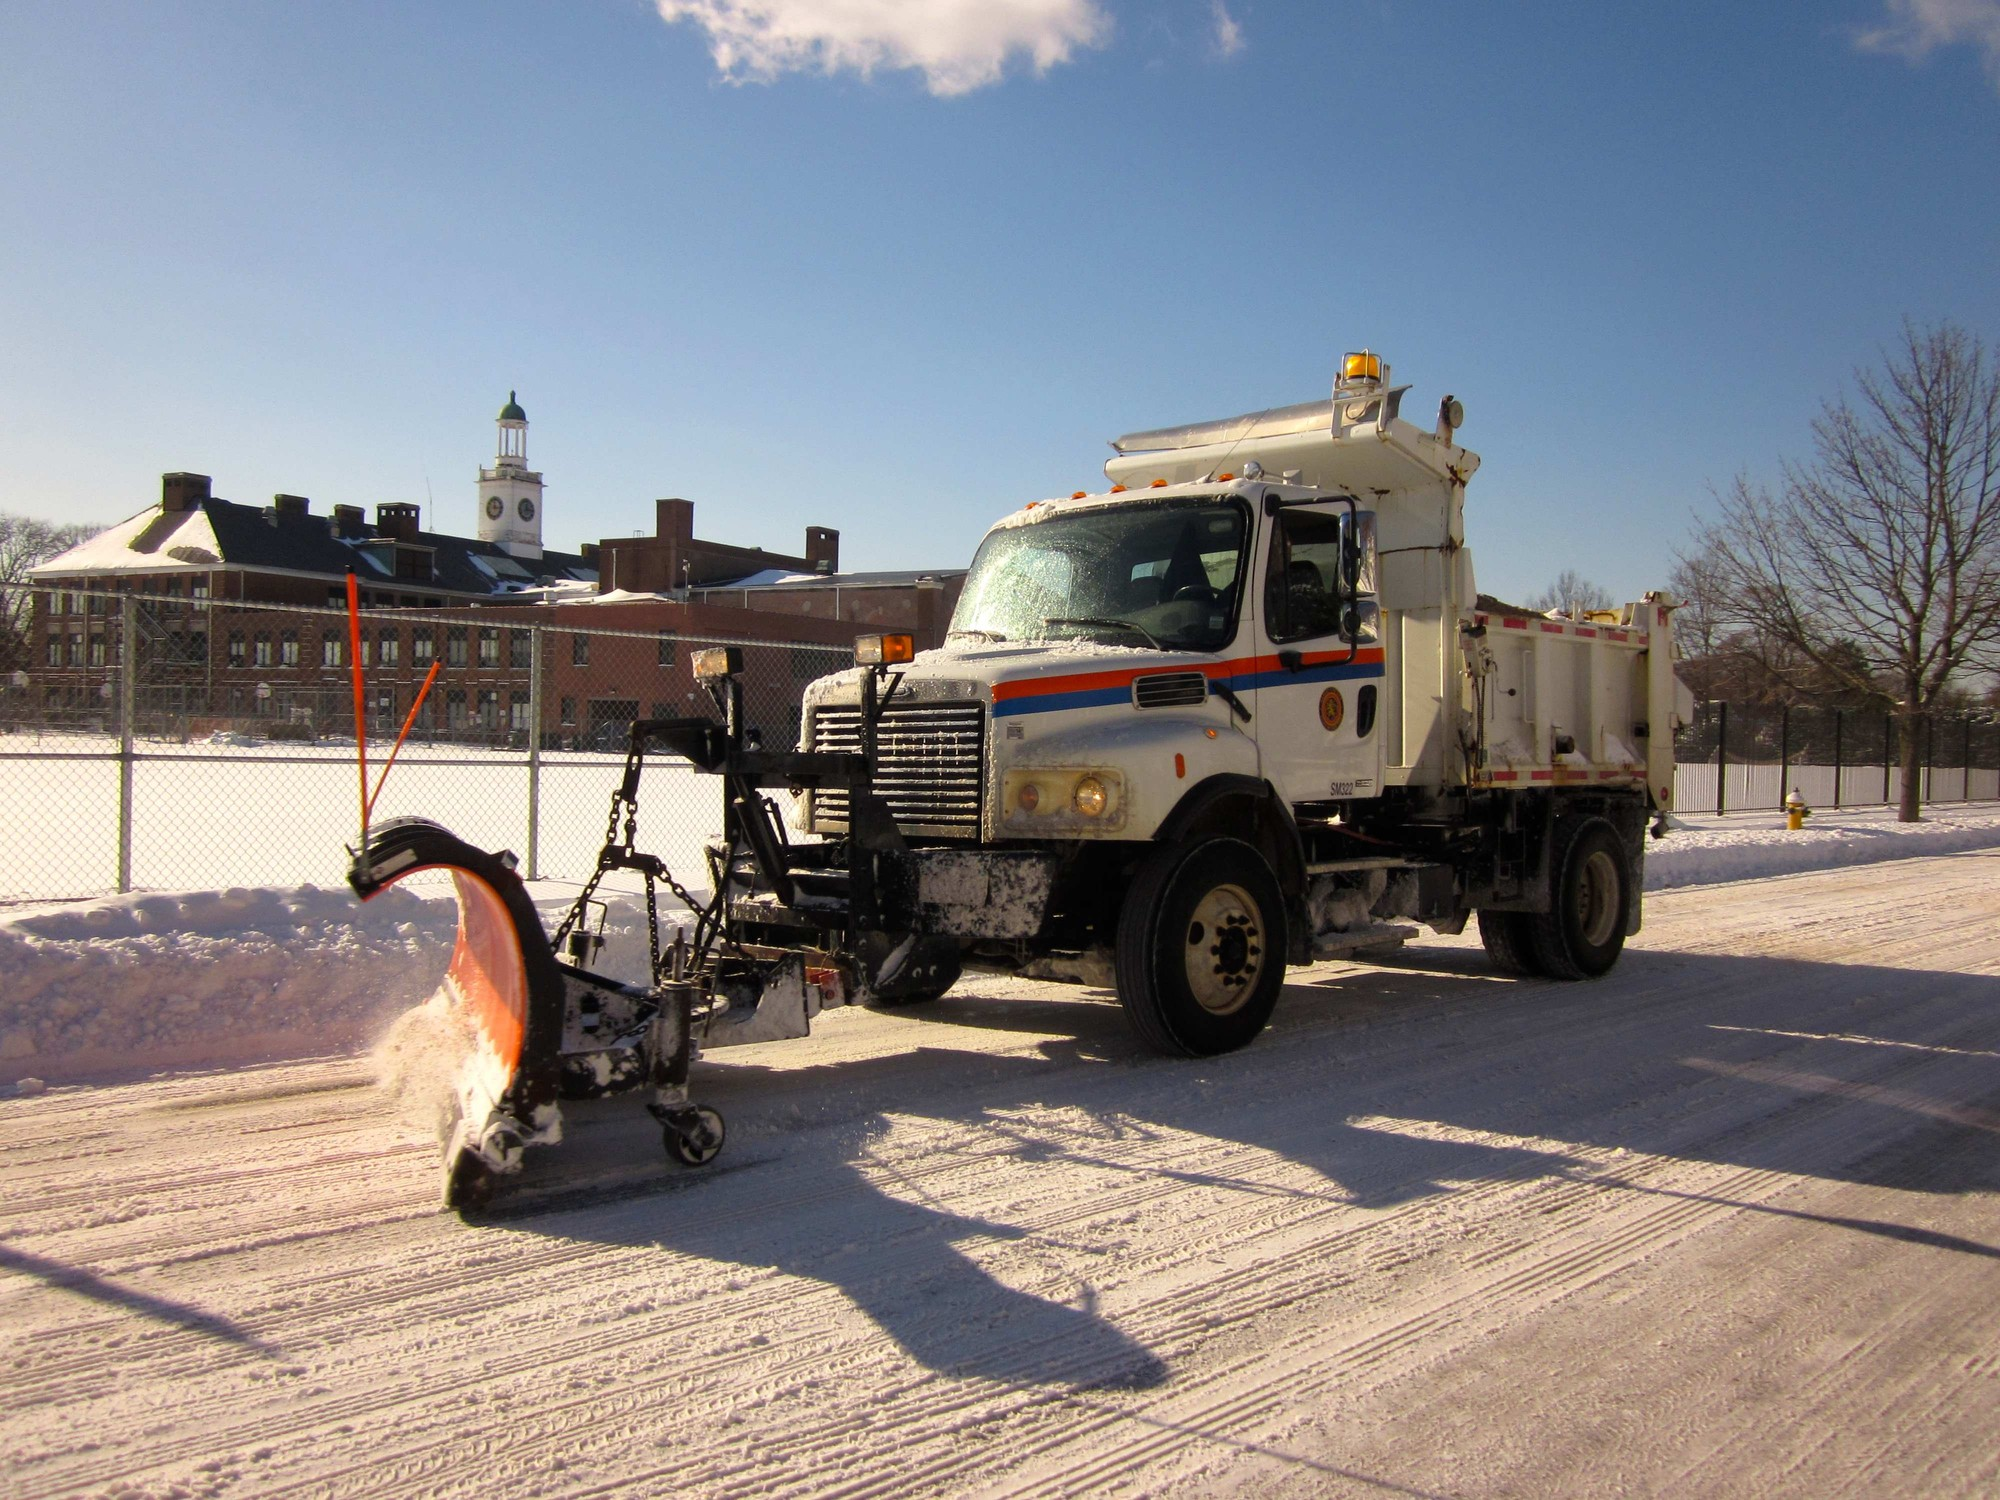 County plows were also out in Rockville Centre to clear snow off county roads.